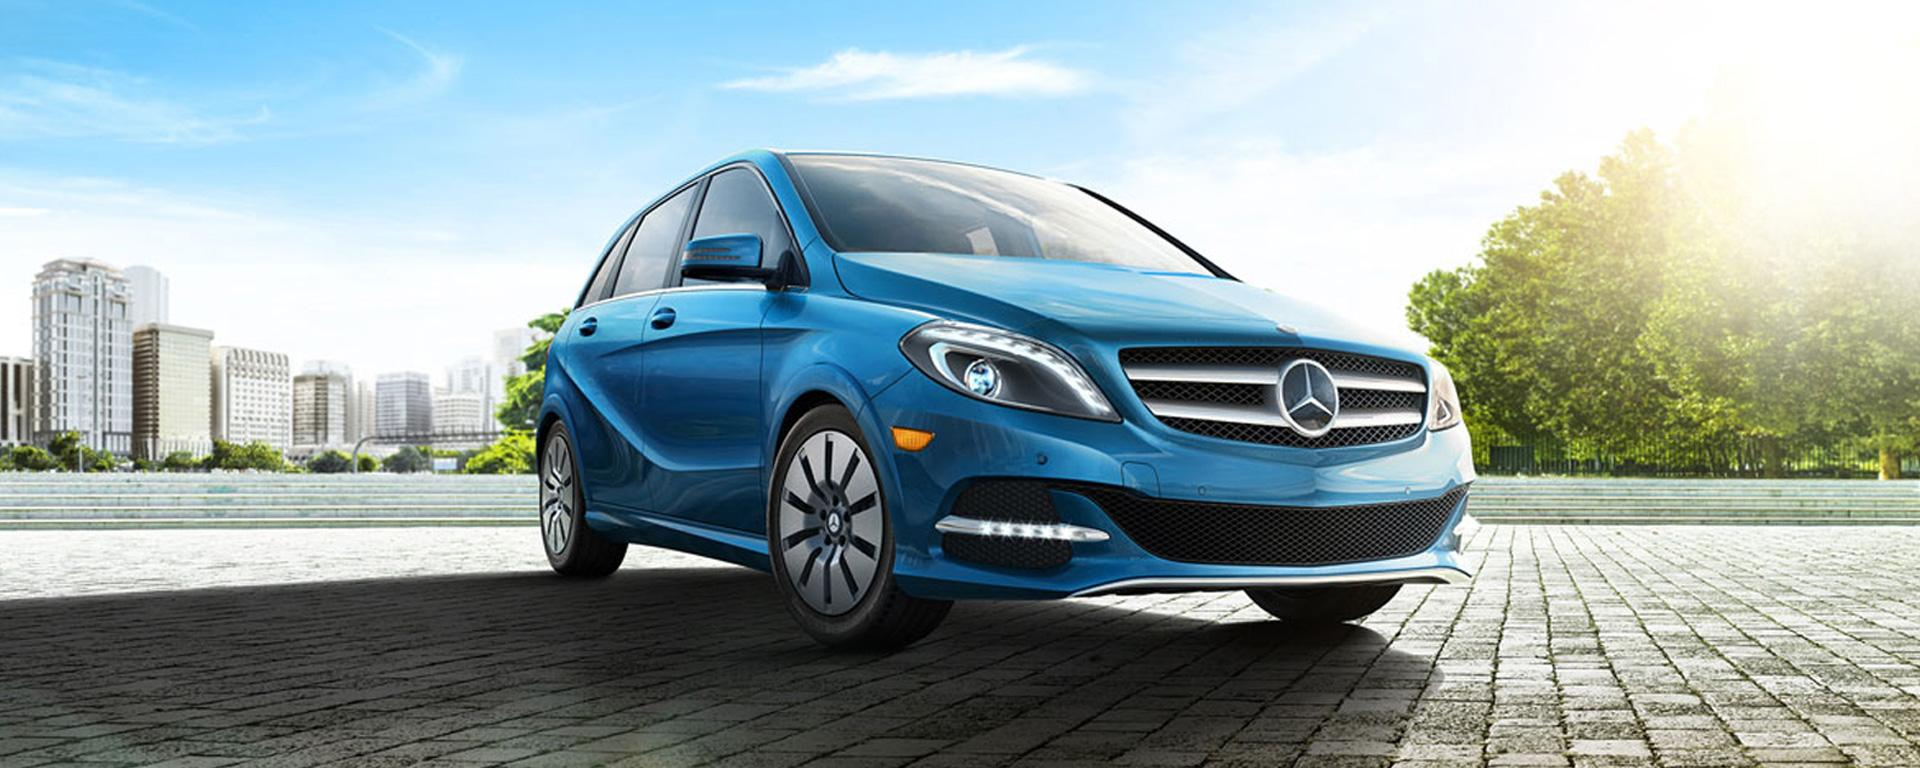 Mercedes-Benz B-Klasse leasen